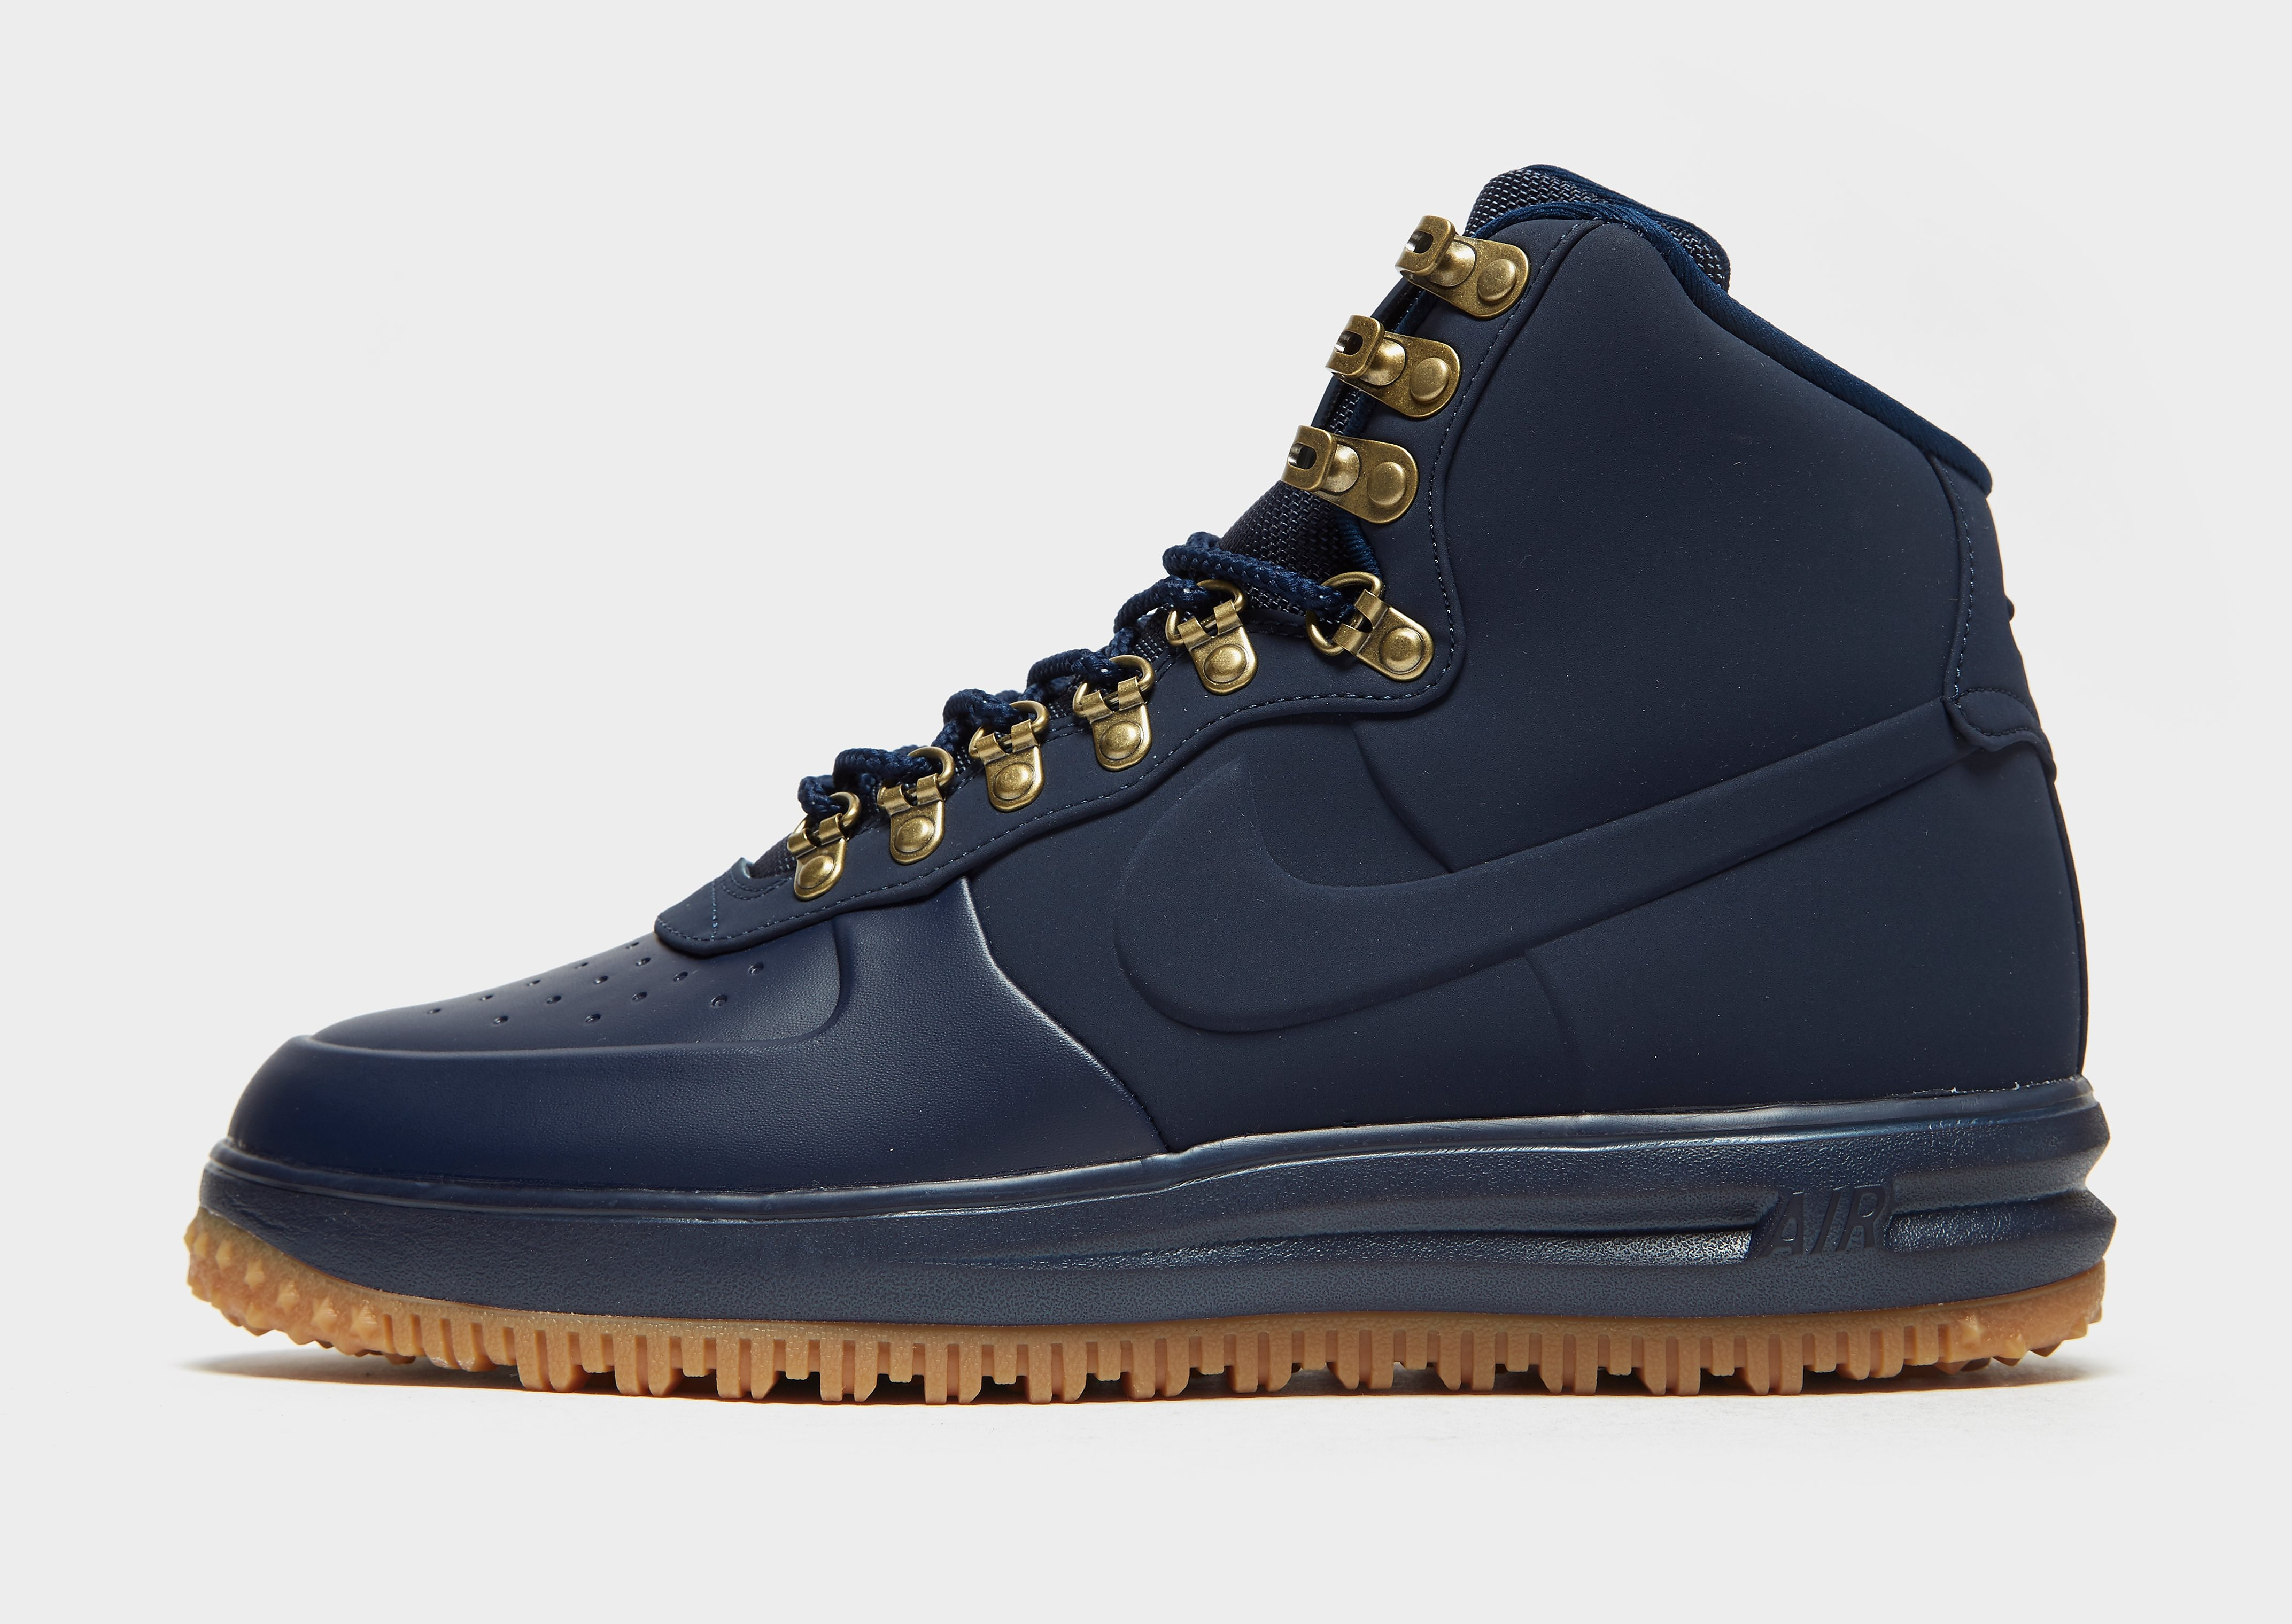 Nike Air Force 1 Mid Duck Boot - Blauw - Heren